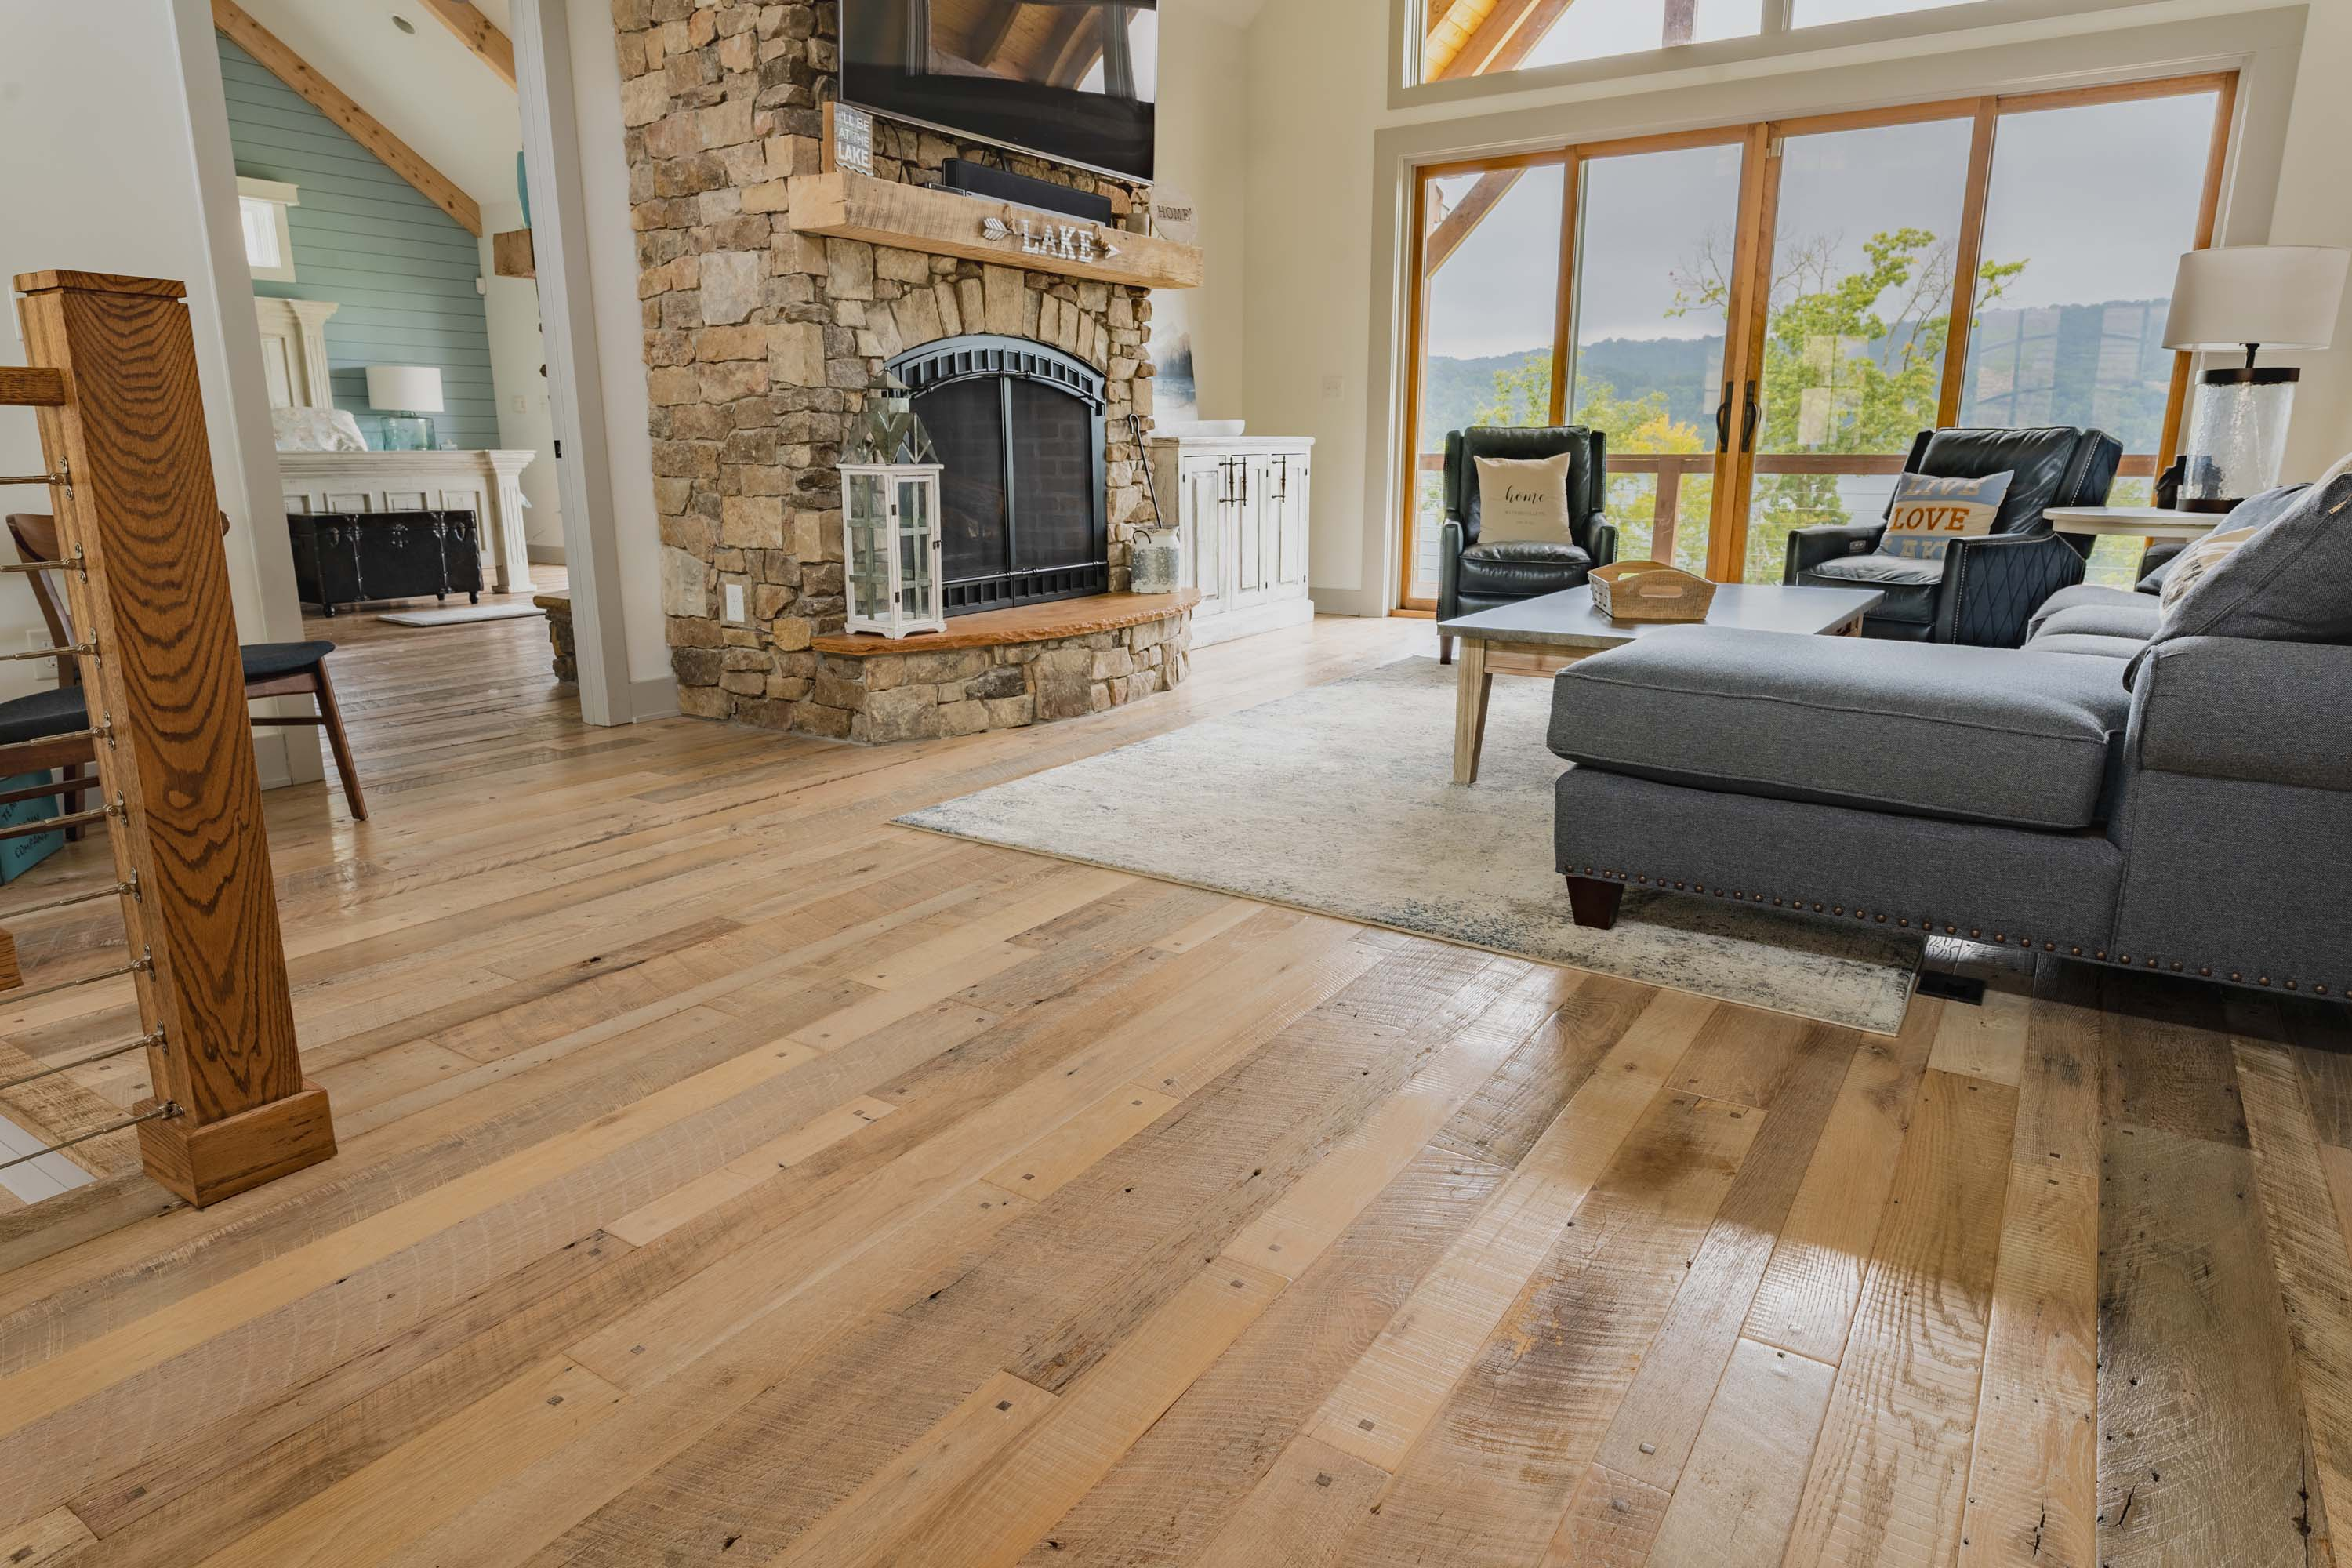 A living room and kitchen area in a house with Nantucket Reclaimed Wood Flooring by Tennessee Wood Flooring. These floors are real hardwood floors made locally.